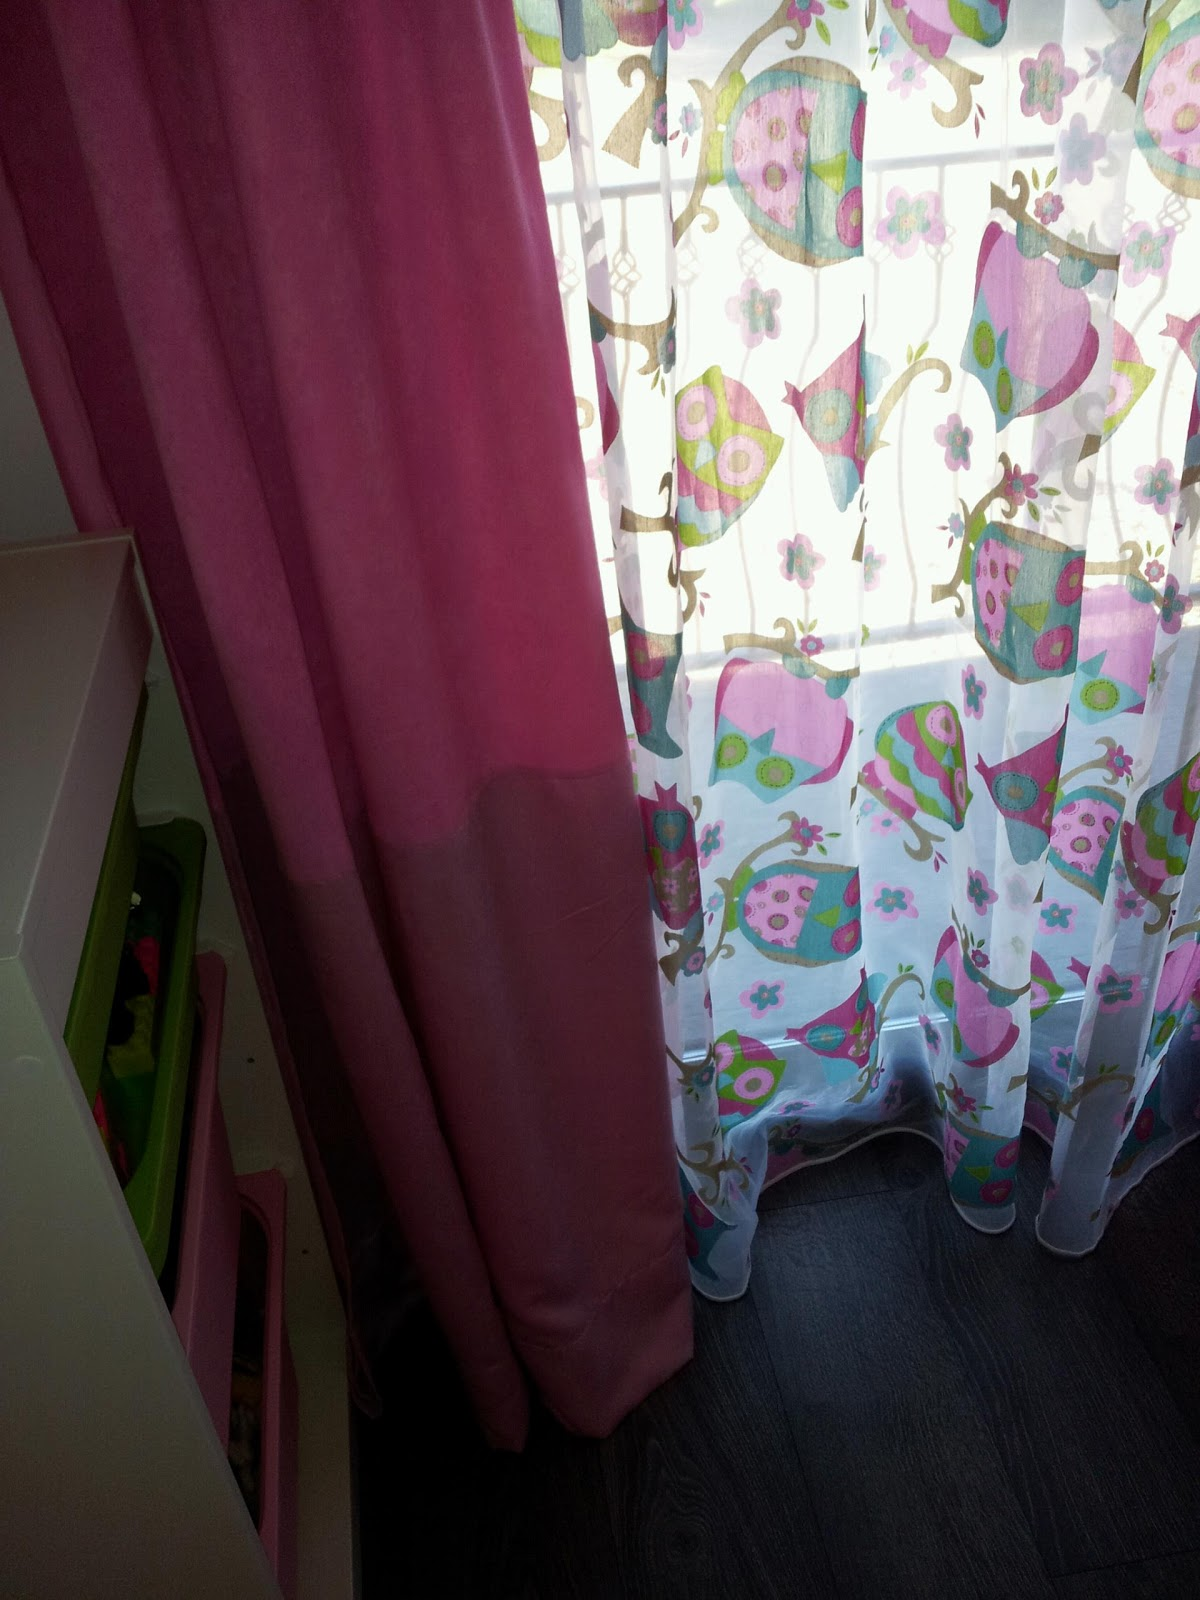 Ikea Children's Chair Covers Wheelchair To Buy By Ozana: The Girls' Bedroom